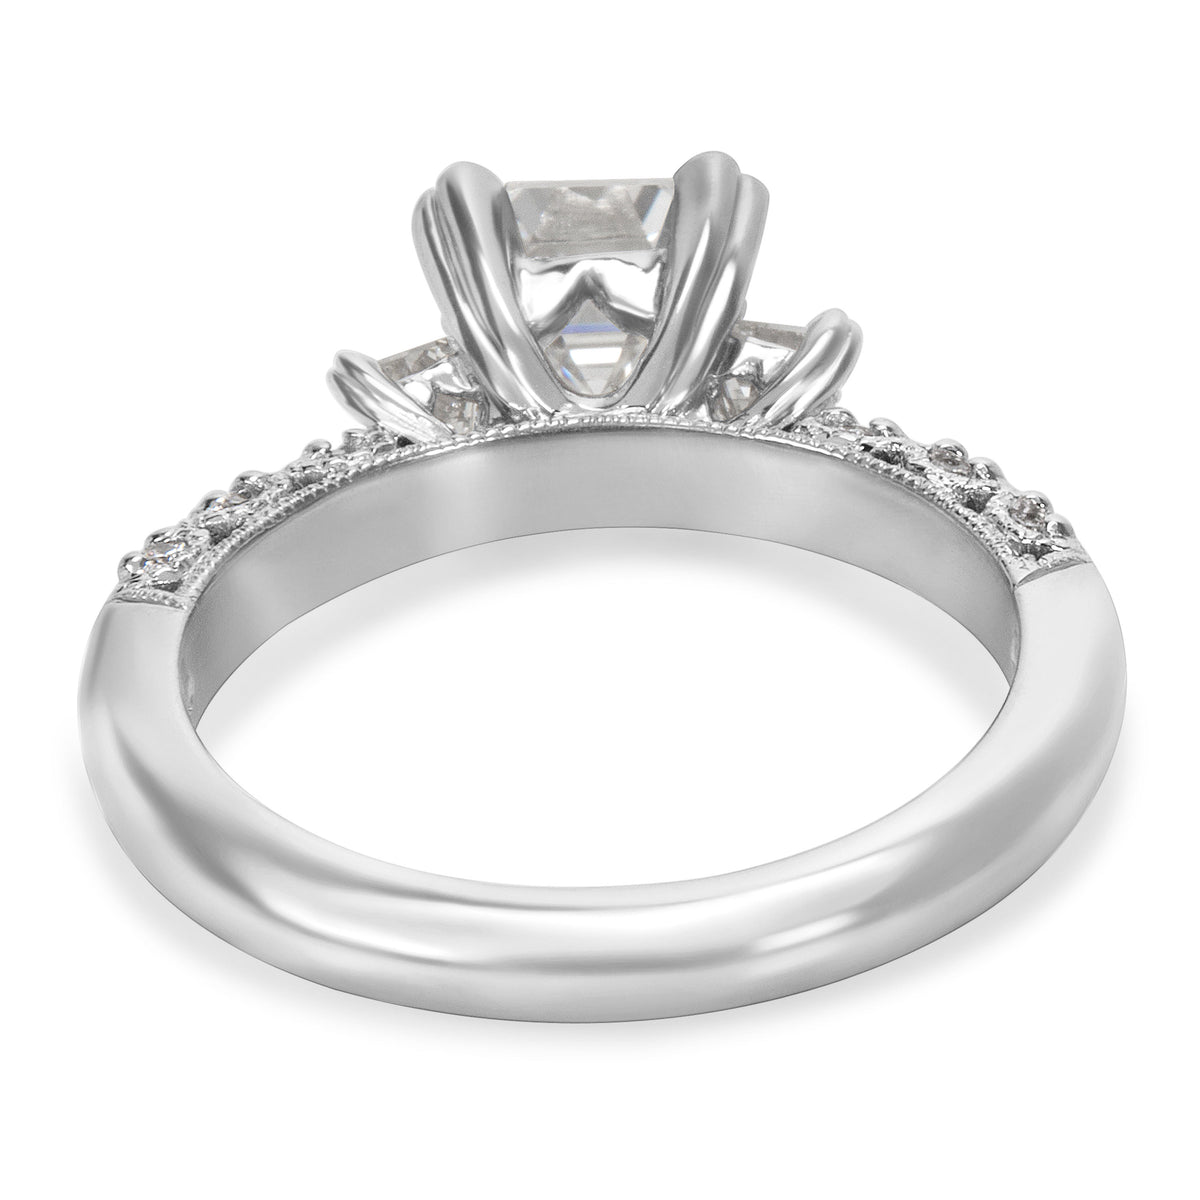 GIA Certified Tacori Diamond Engagement Ring in Platinum 1.93 ctw F VS1